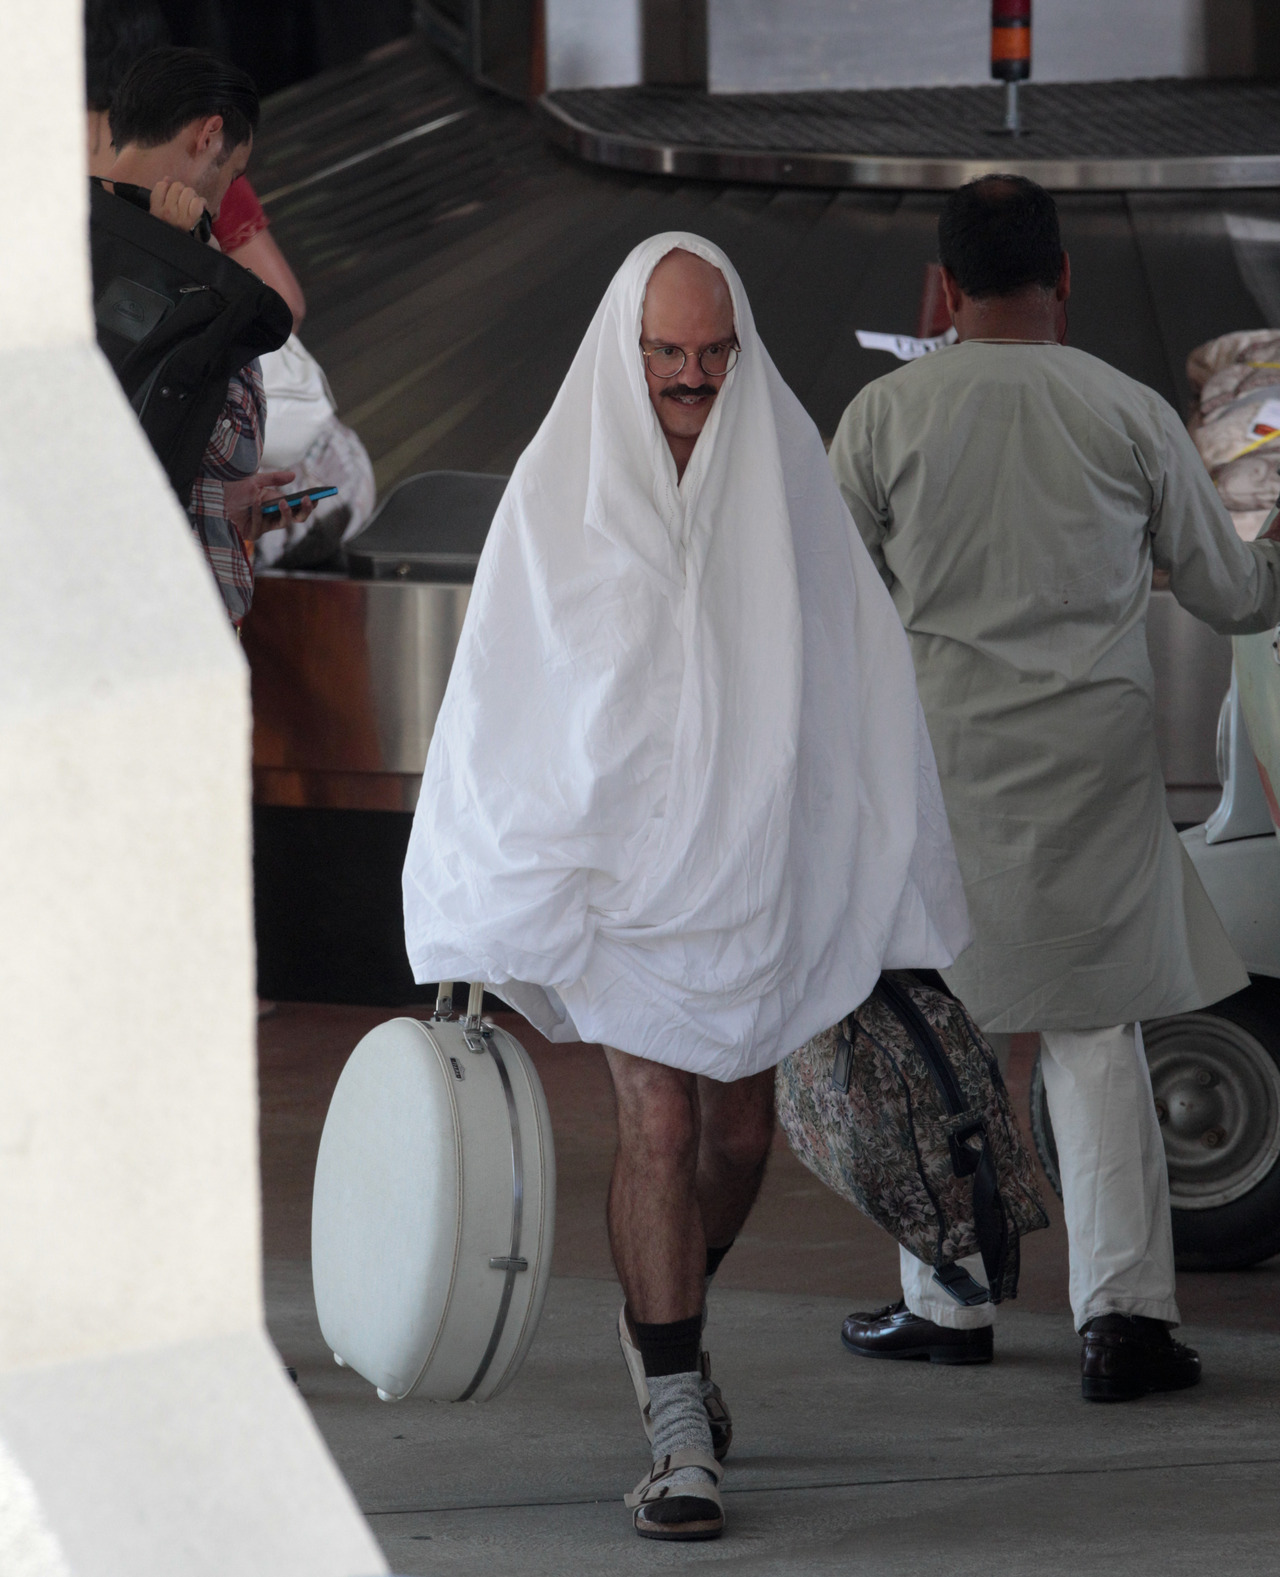 David Cross on the set of Arrested Development yesterday EEEE!